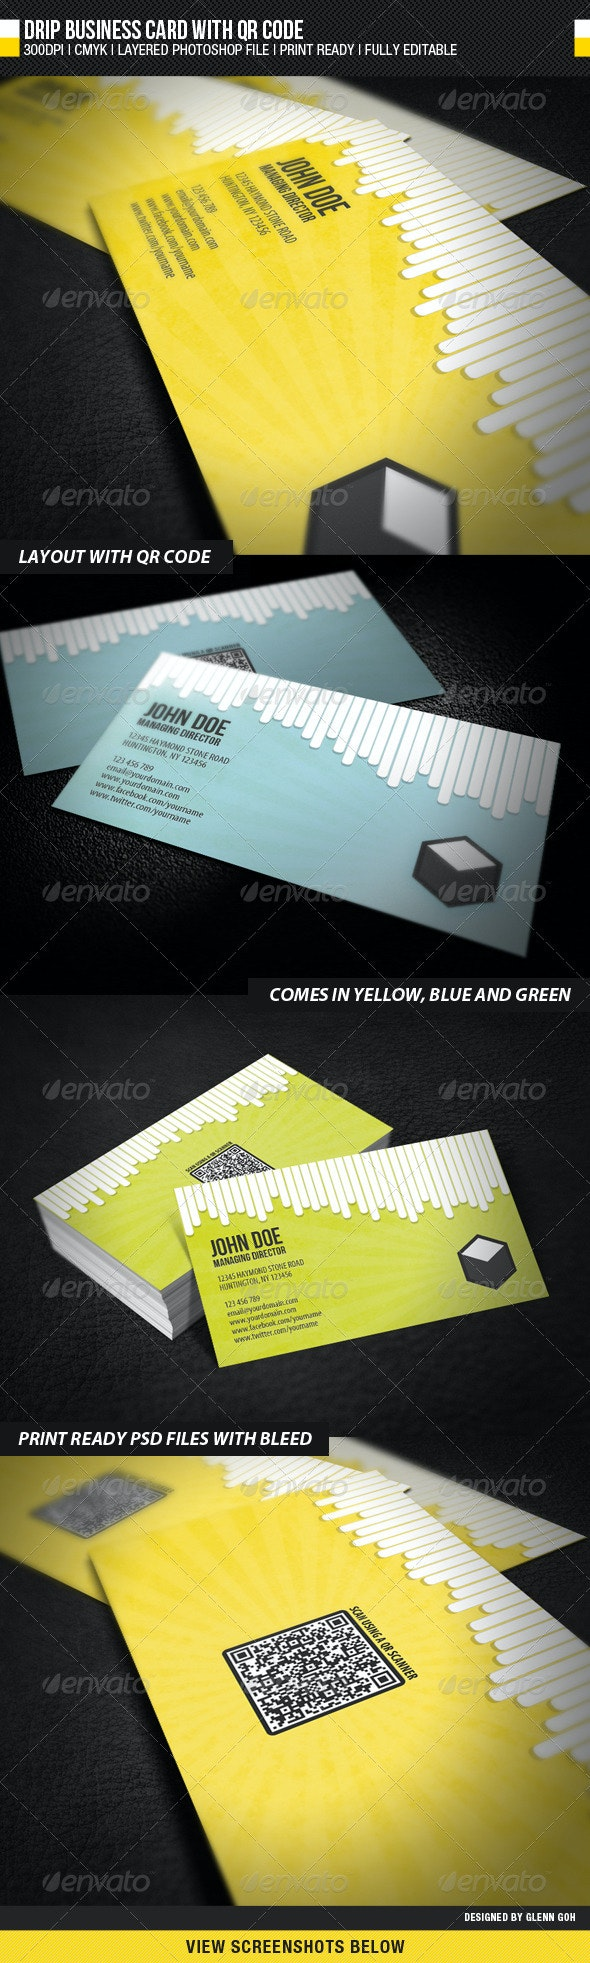 Drip Business Card With QR Code - Corporate Business Cards